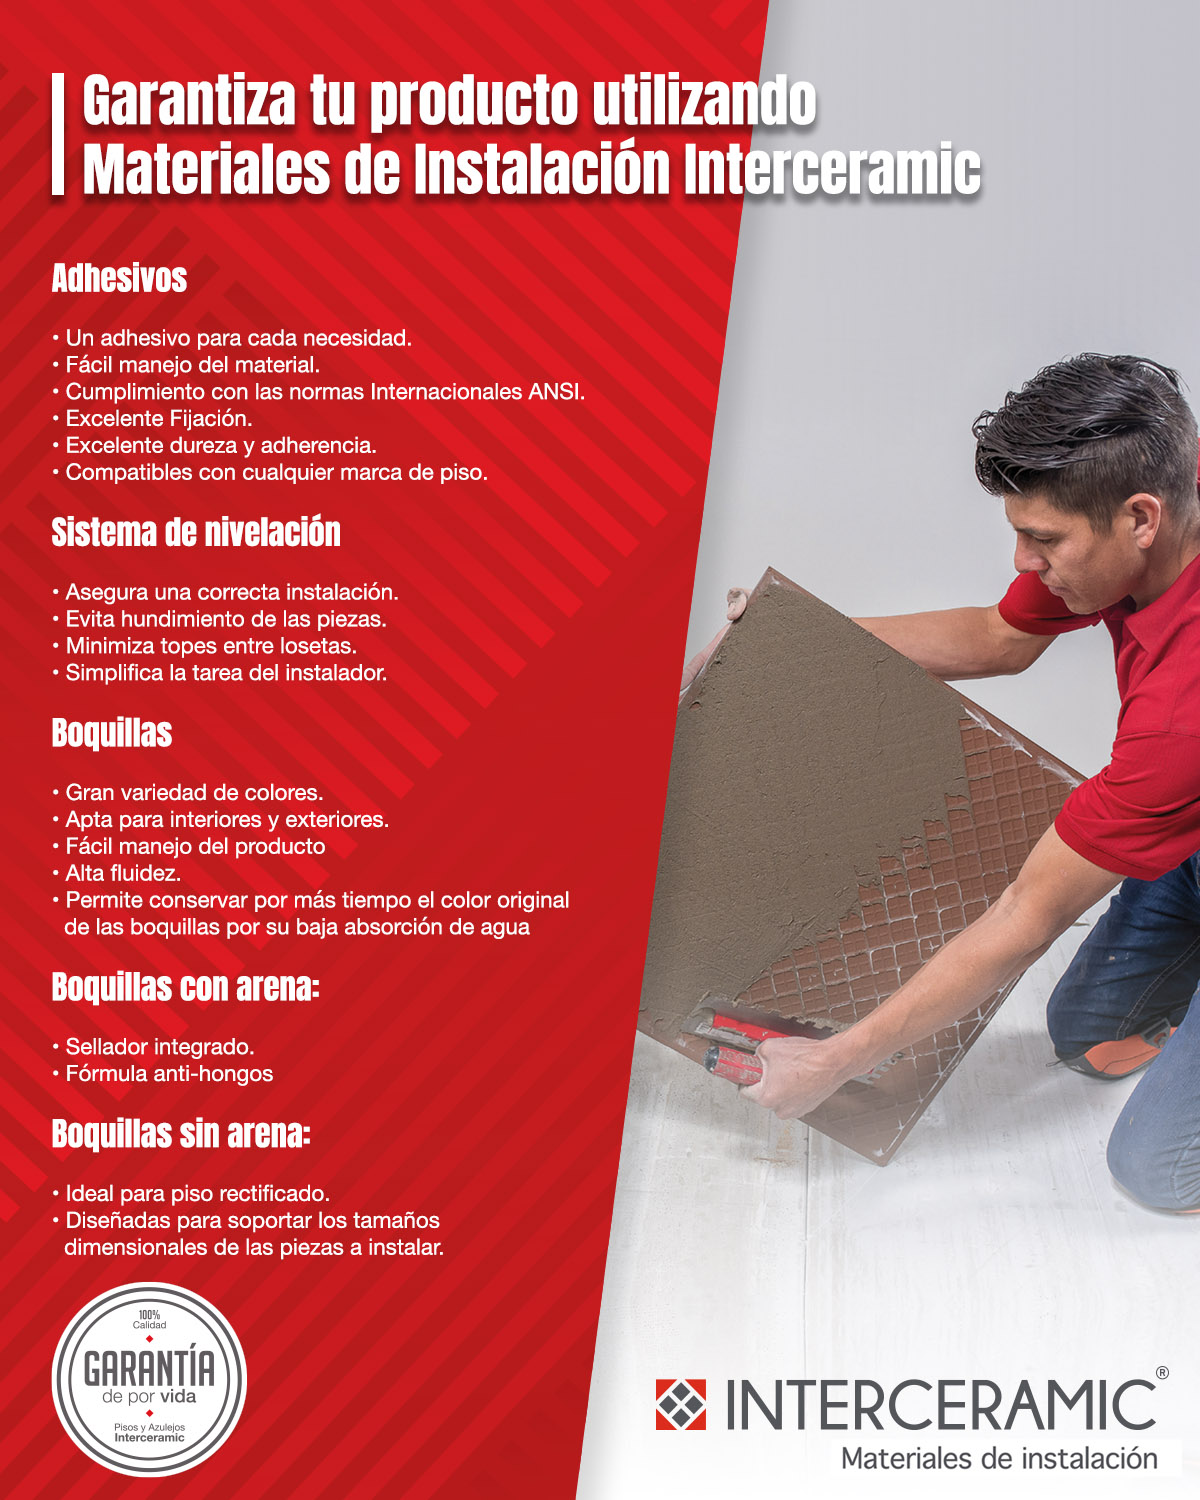 Interceramic Garantía Materiales Instalación The Home Depot México